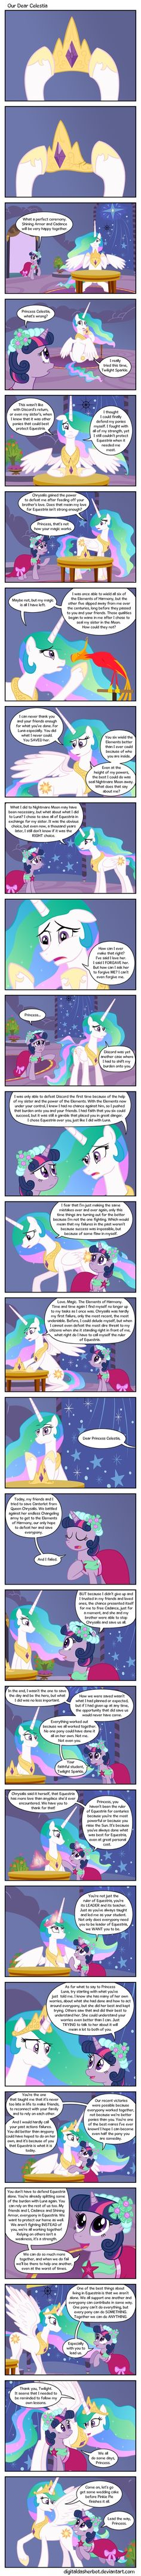 Twilight sparkle giving Princess Celestia some VERY inspiring advise <3 Yes it is long, but it is very good advise, & is very sweet :)